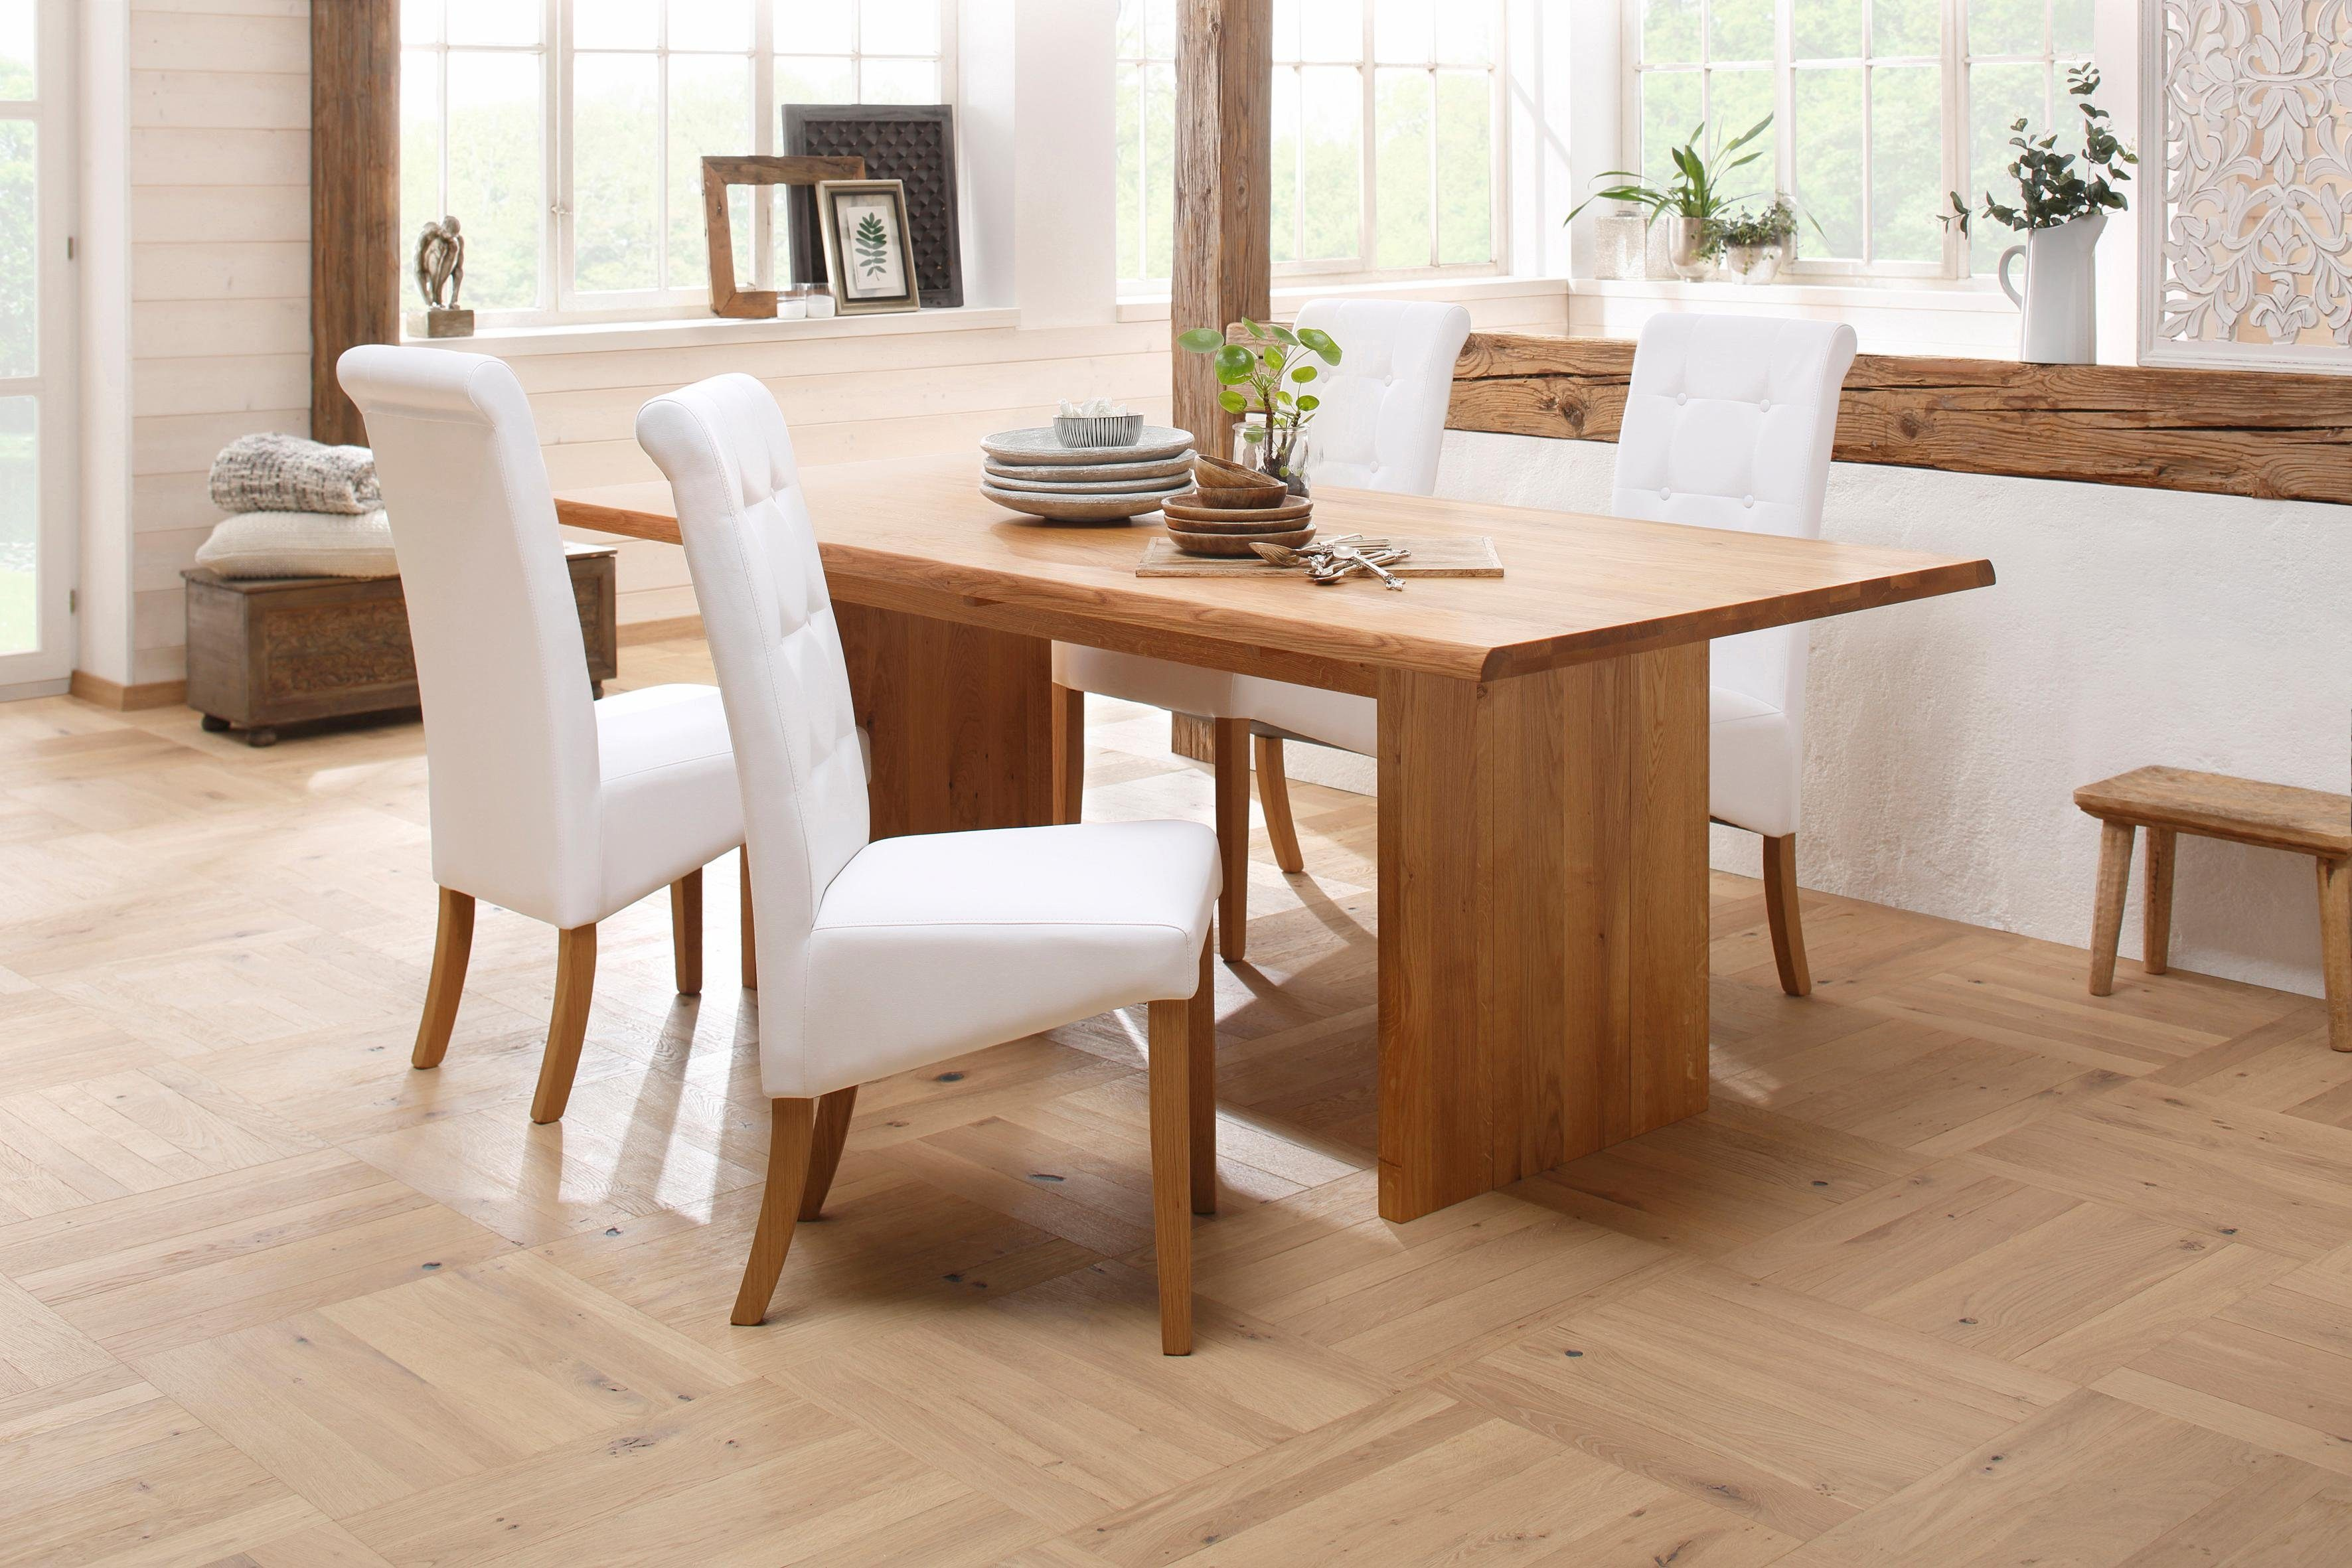 Premium collection by home affaire eettafel trondheim« van